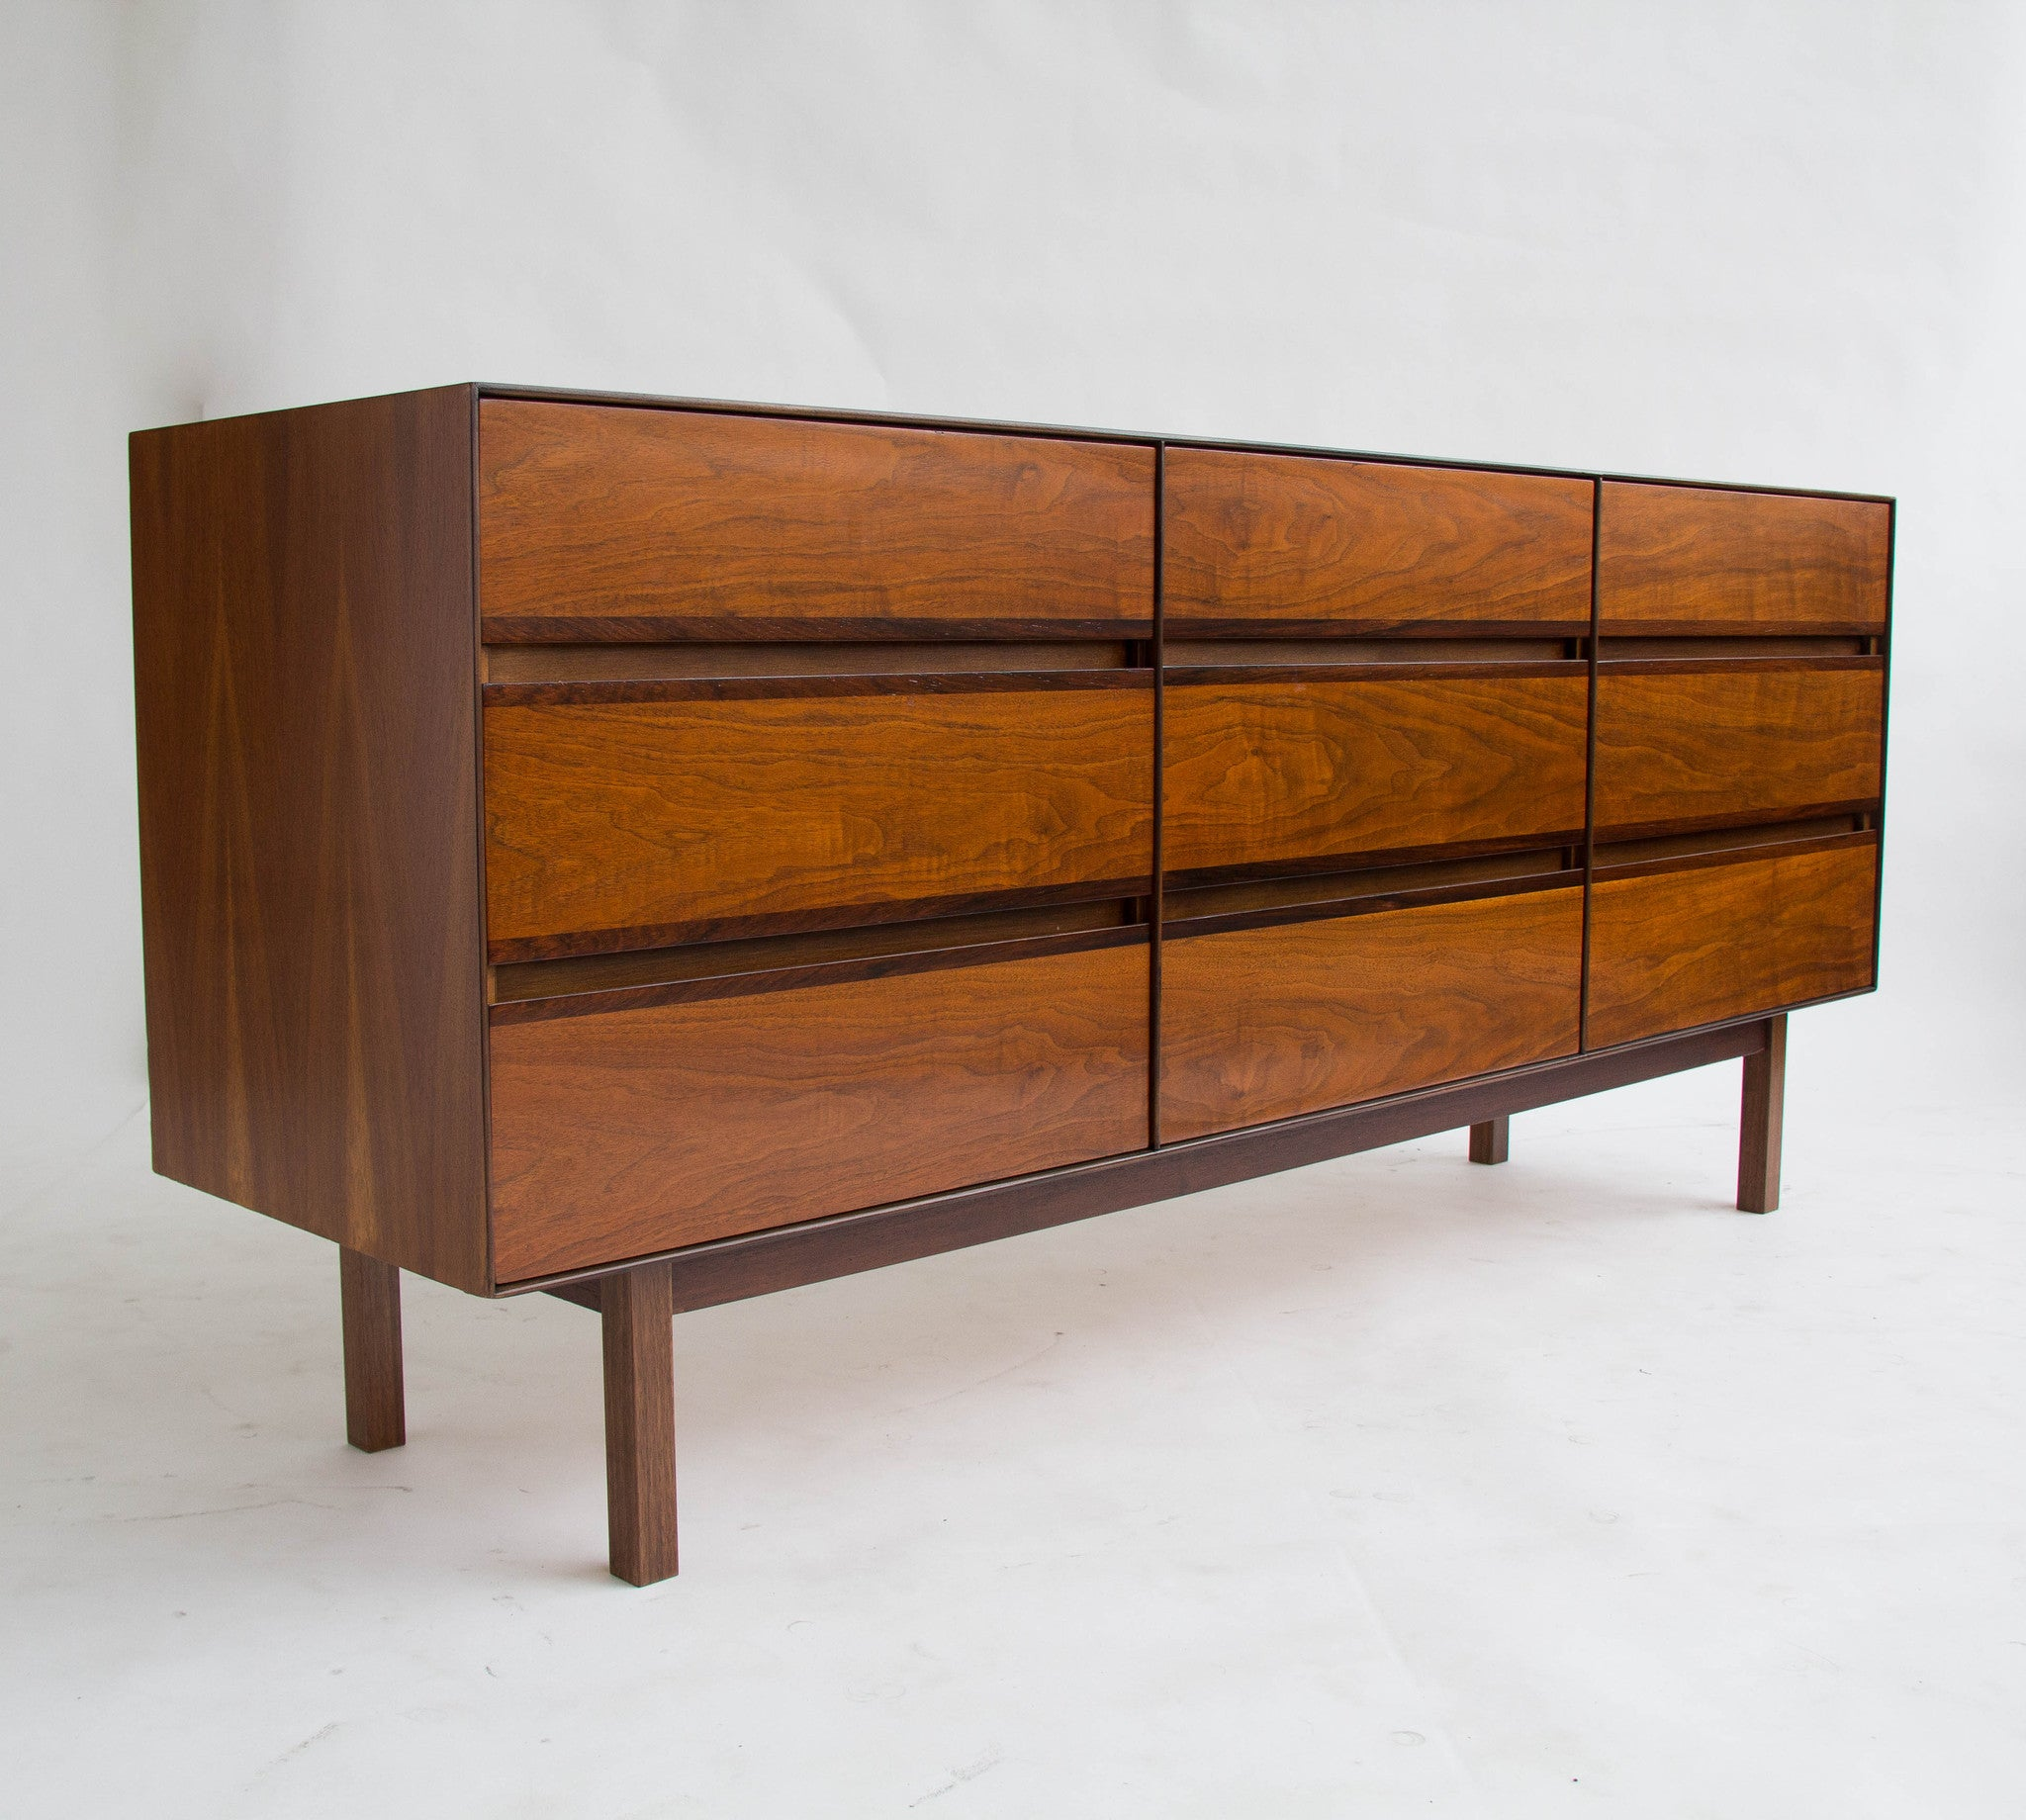 browning furniture. walnut and rosewood dresser by h paul browning for stanley furniture 8